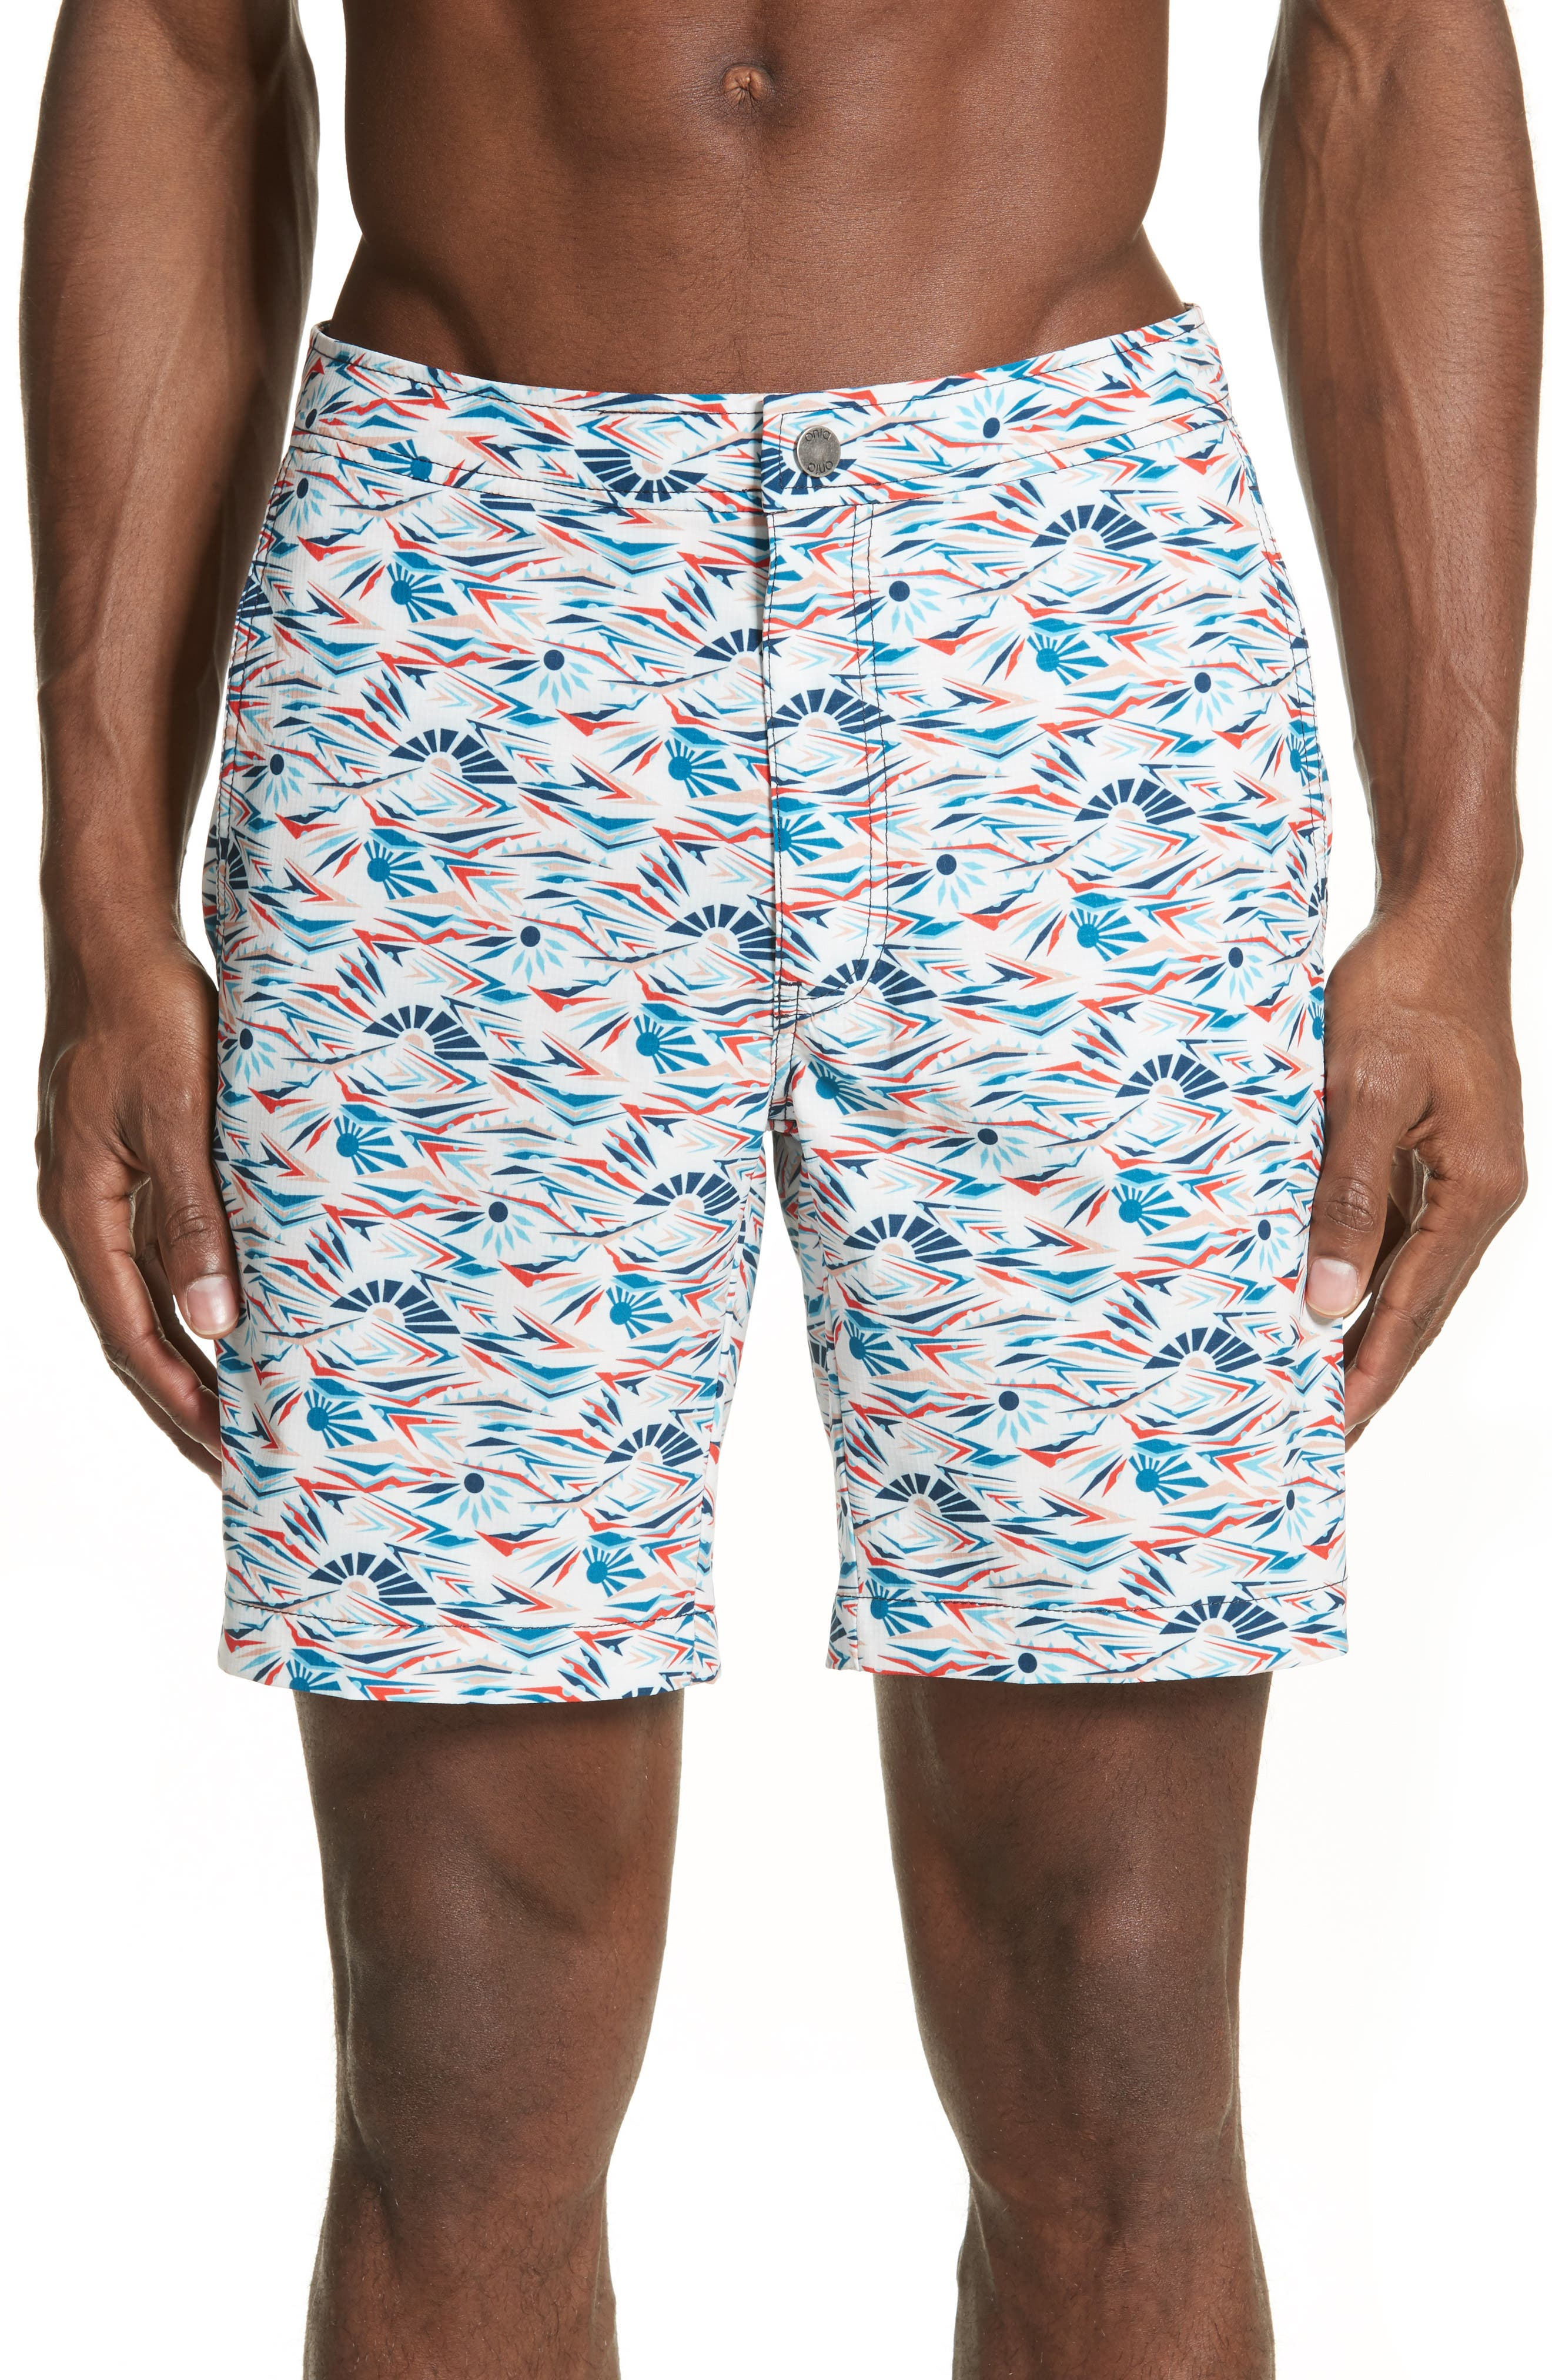 Calder Sunrise Print Swim Trunks,                             Main thumbnail 1, color,                             WHITE MULTI